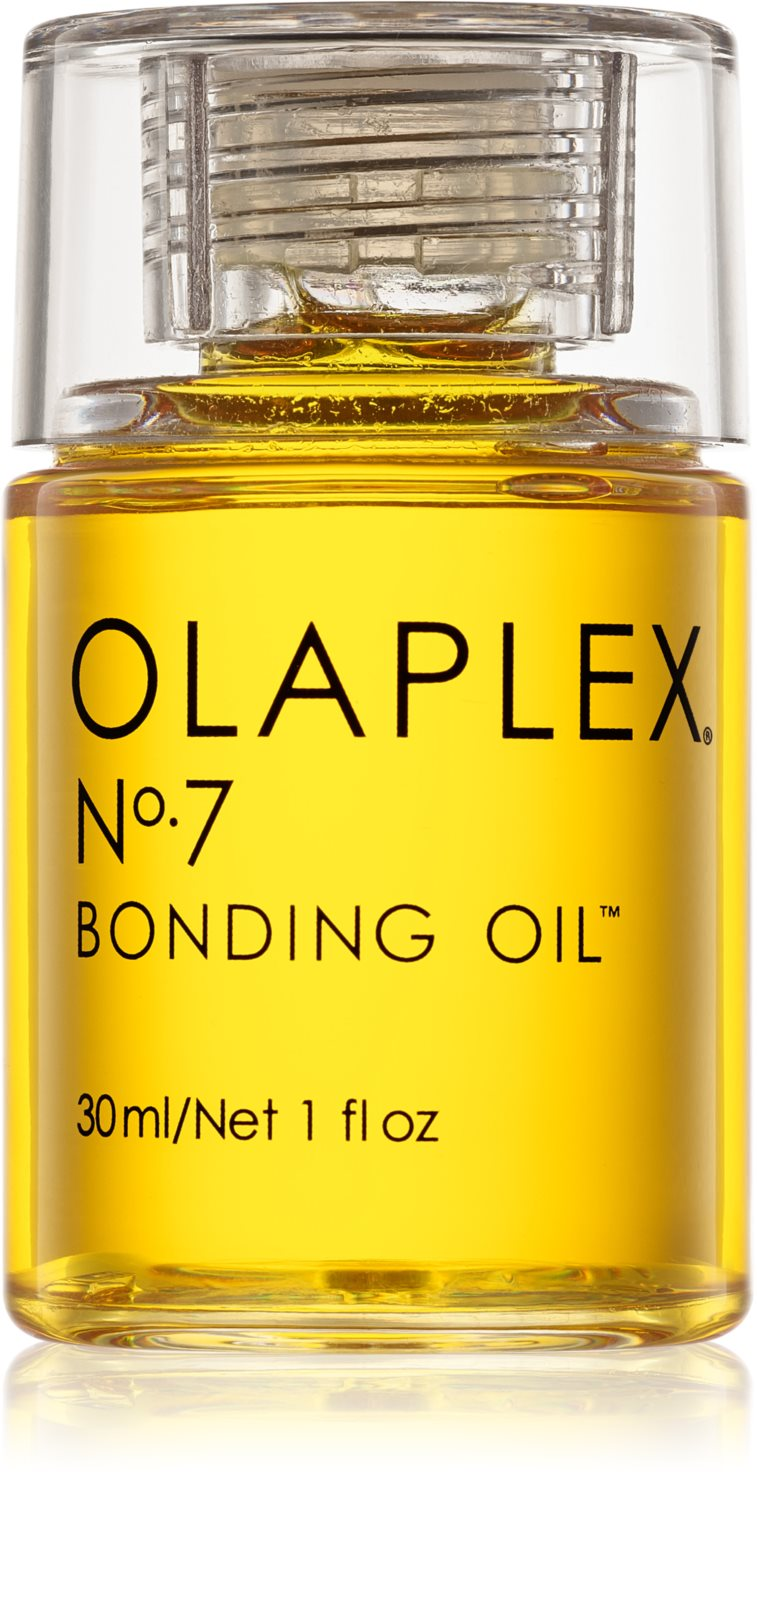 Olaplex N°7 Bonding Oil 30 ml